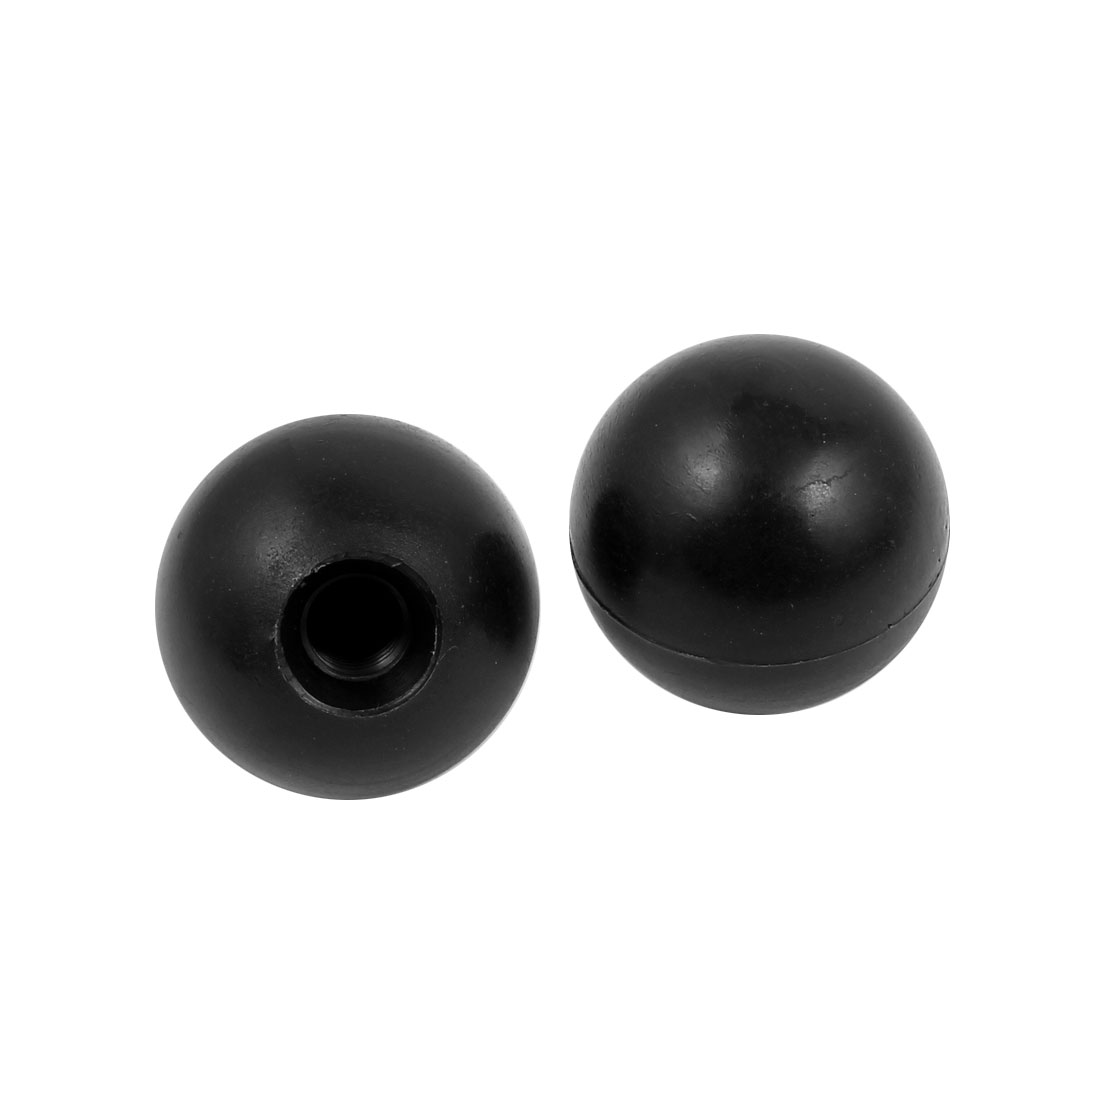 2 Pcs M10 x 35mm Plastic Ball Machine Tool Accessories Console Handle Black